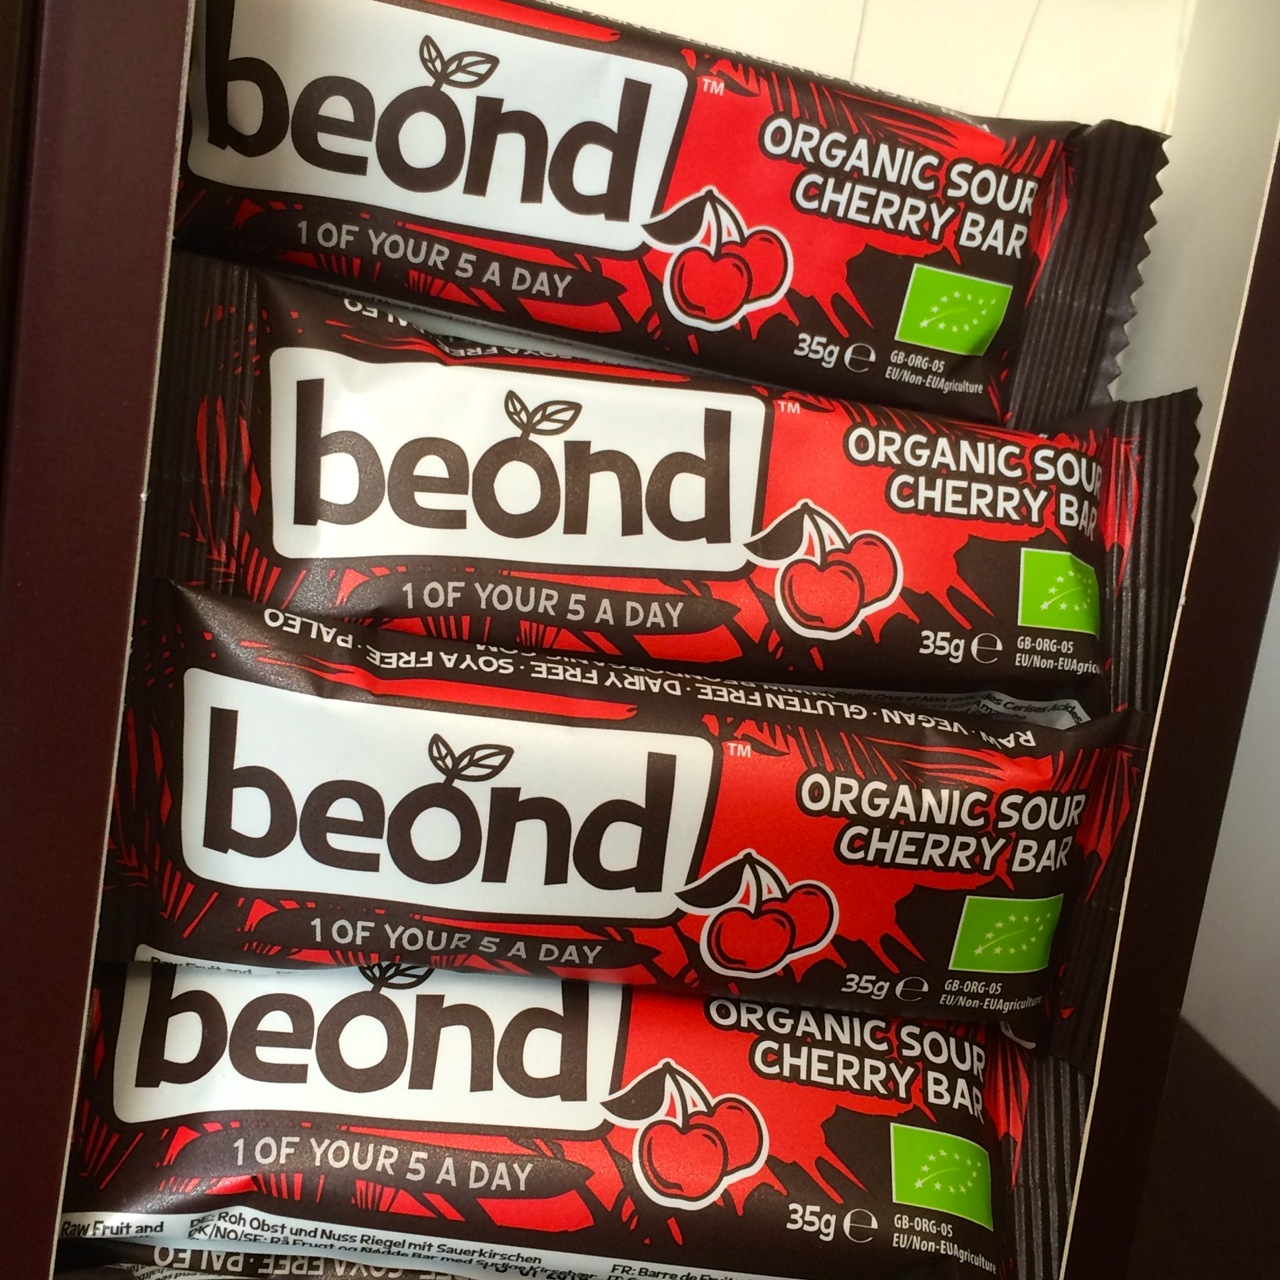 https://i0.wp.com/fatgayvegan.com/wp-content/uploads/2015/09/Beond-sour-cherry.jpg?fit=1280%2C1280